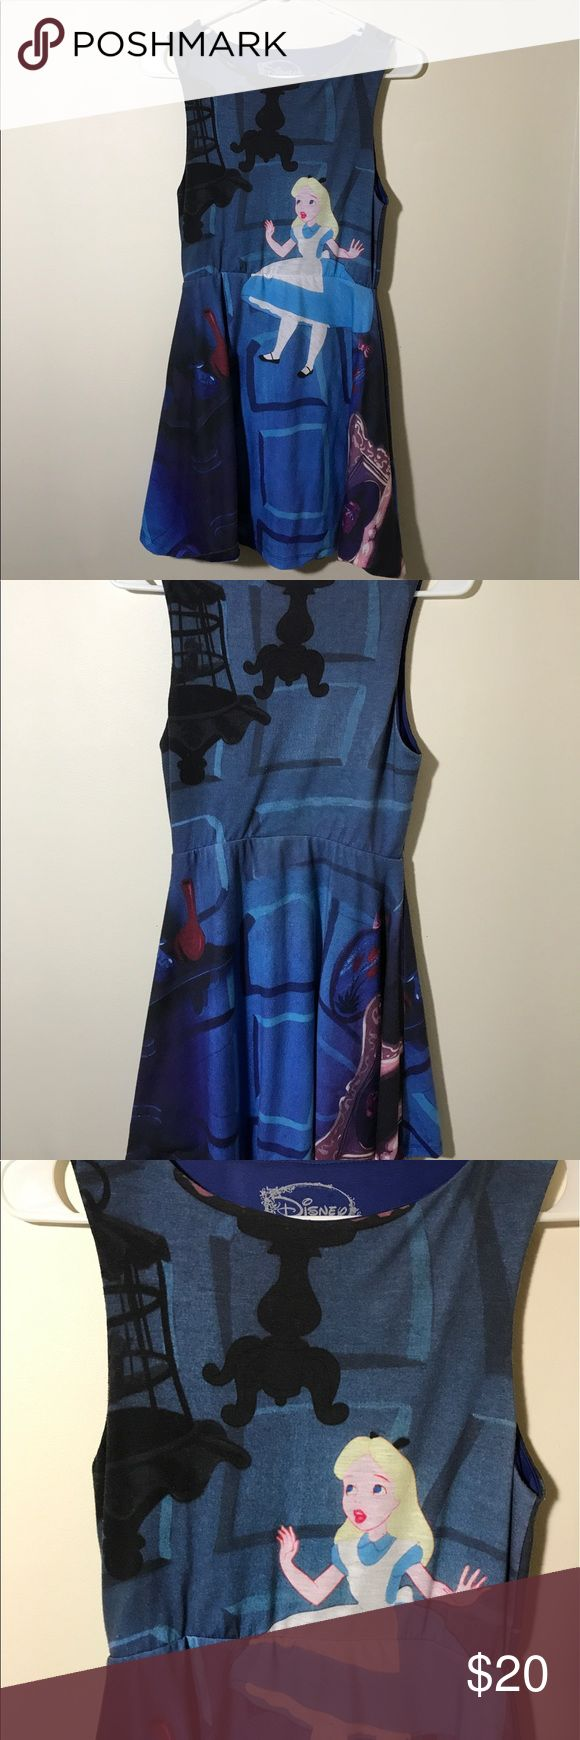 Alice in Wonderland Short Dress This is very cute, unique and short dress. It displays Alice from Alice in Wonderland and the dress is from Hot Topic. Its in a size Small (3-5) and has never been worn, but has been washed once. ☕️❤️ Hot Topic Dresses Mini